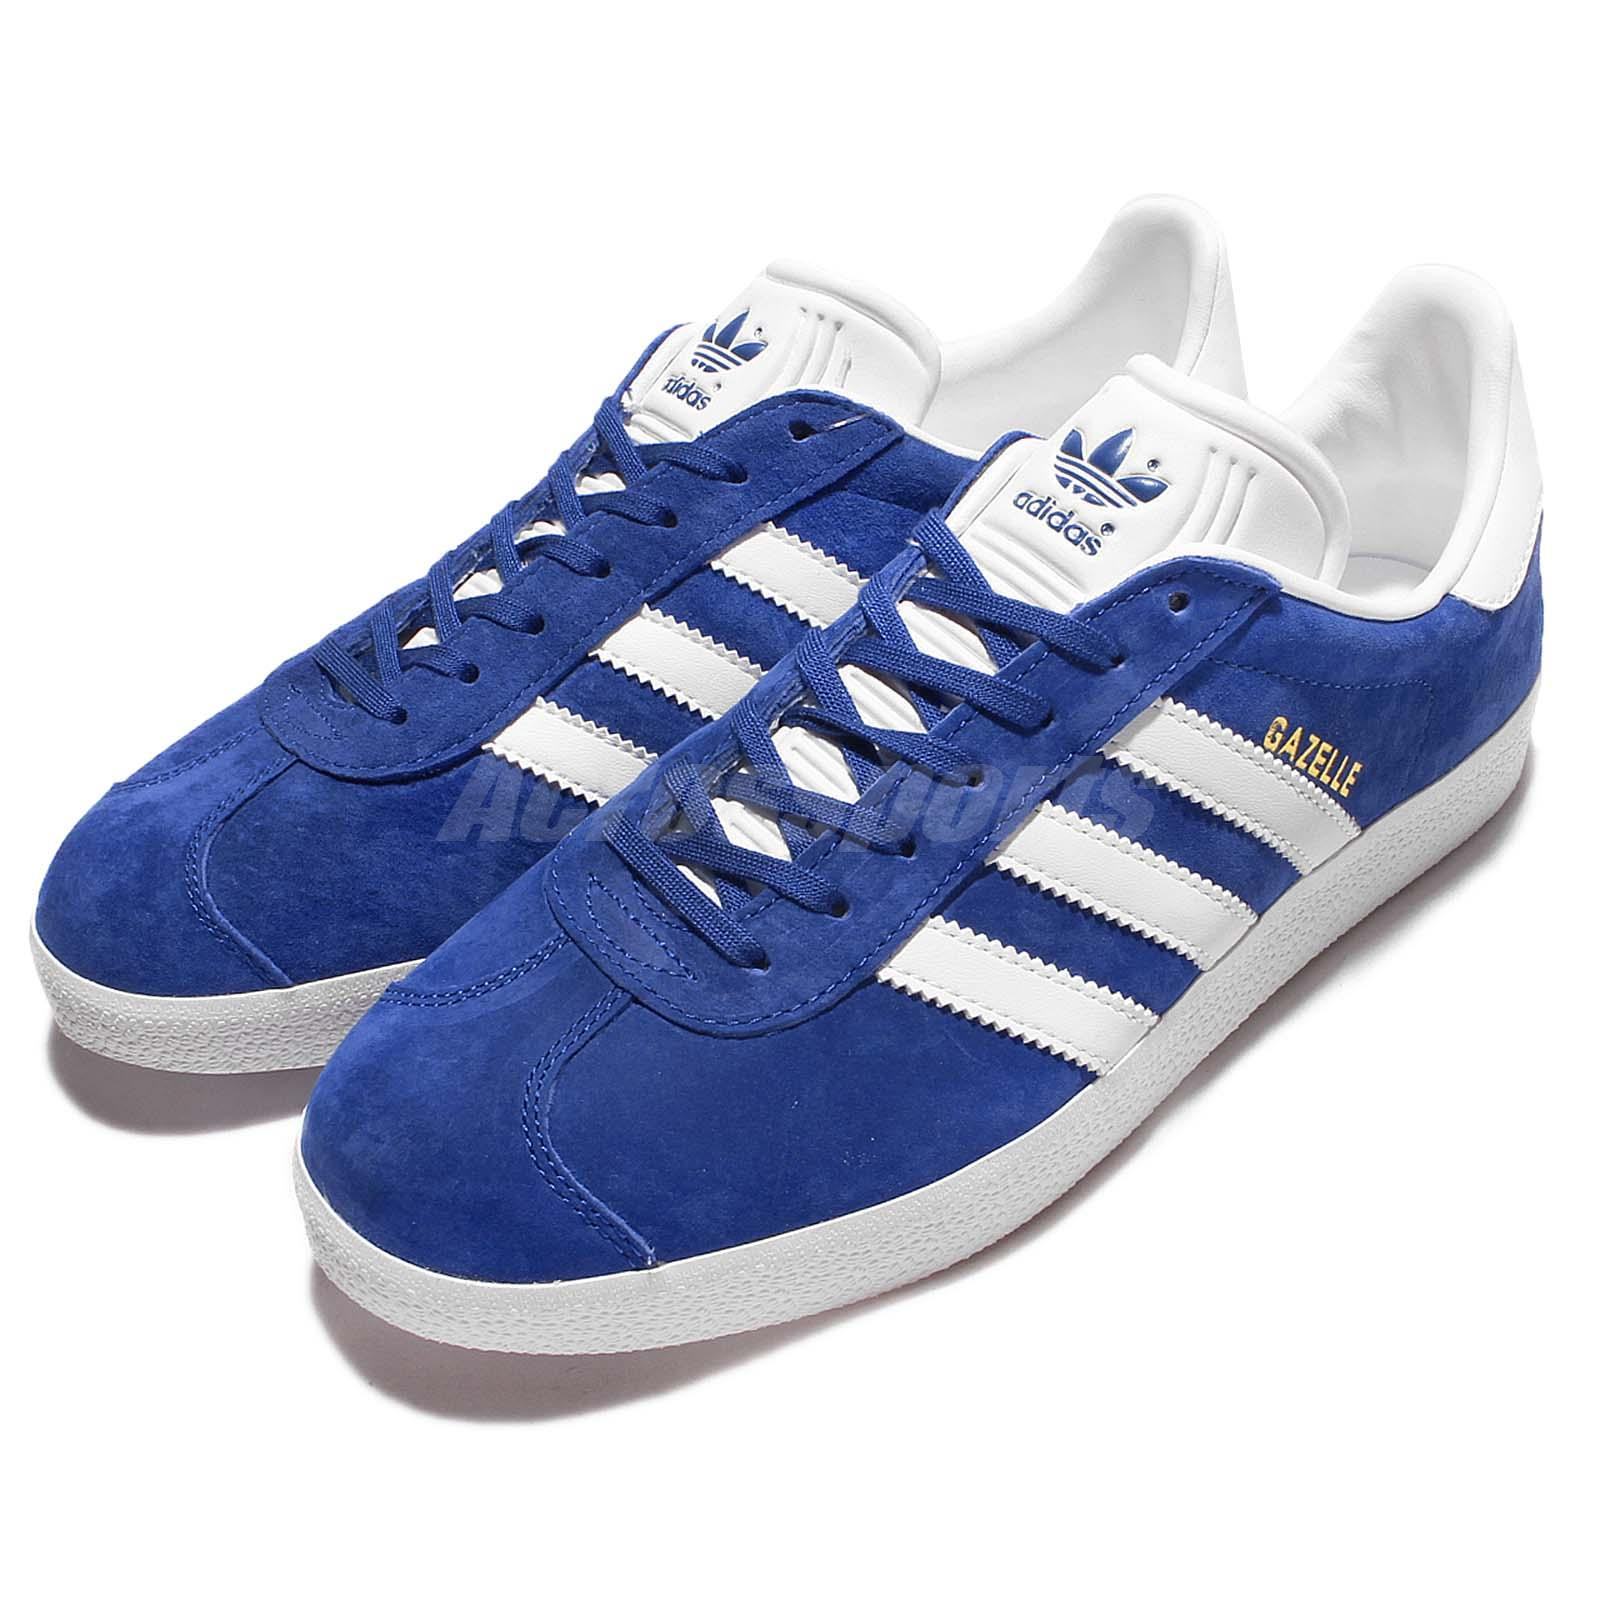 Adidas Originals Gazelle Blue White Mens Vintage Shoes